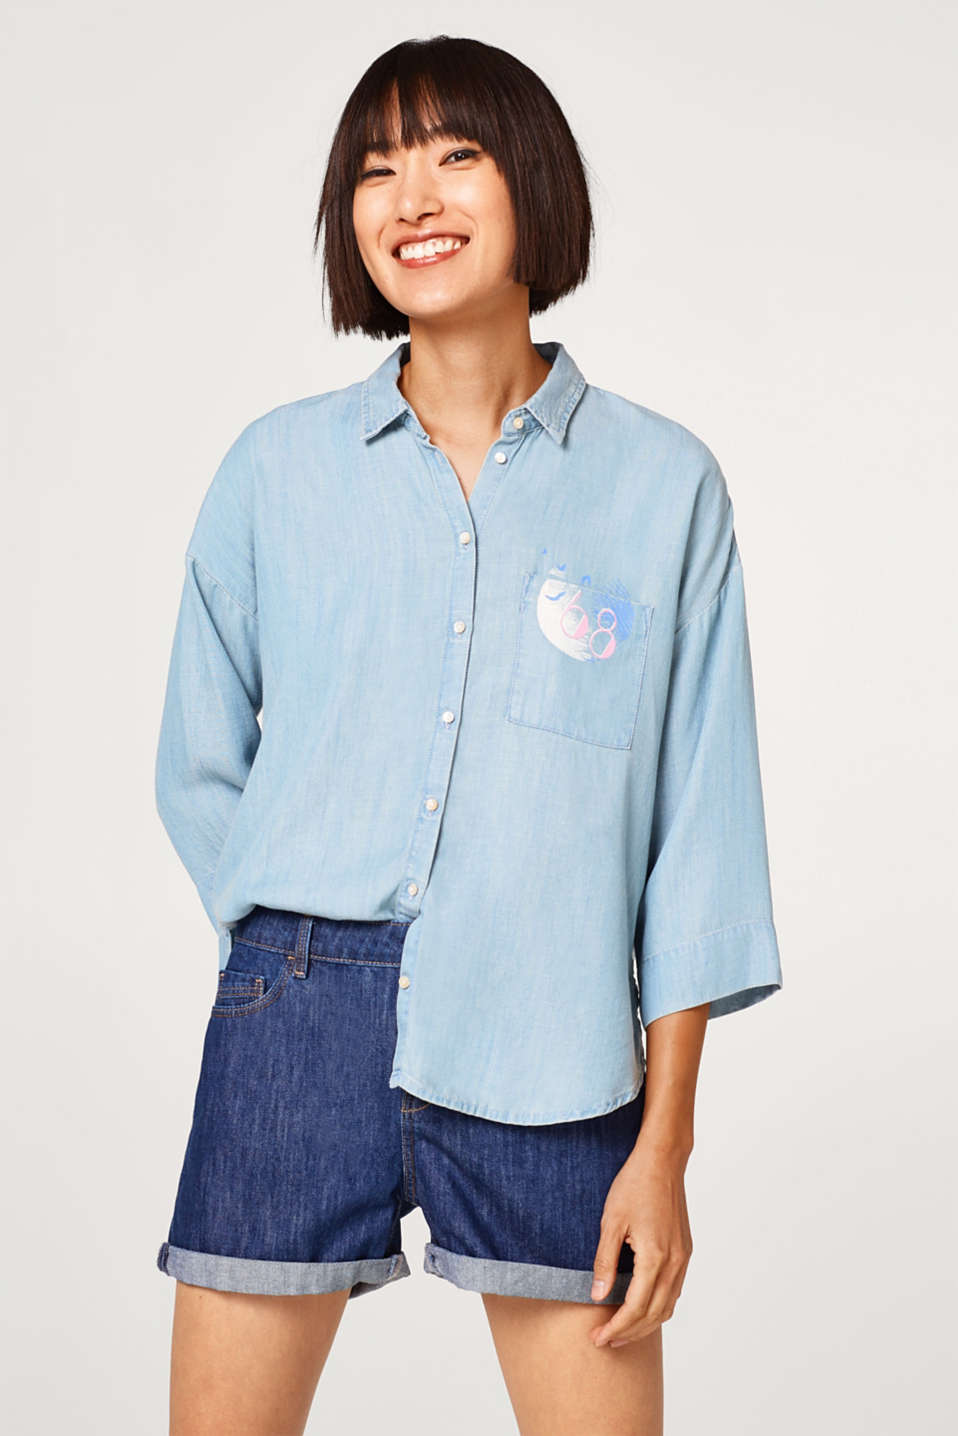 Esprit - Lyocell blouse in a denim look with a breast pocket